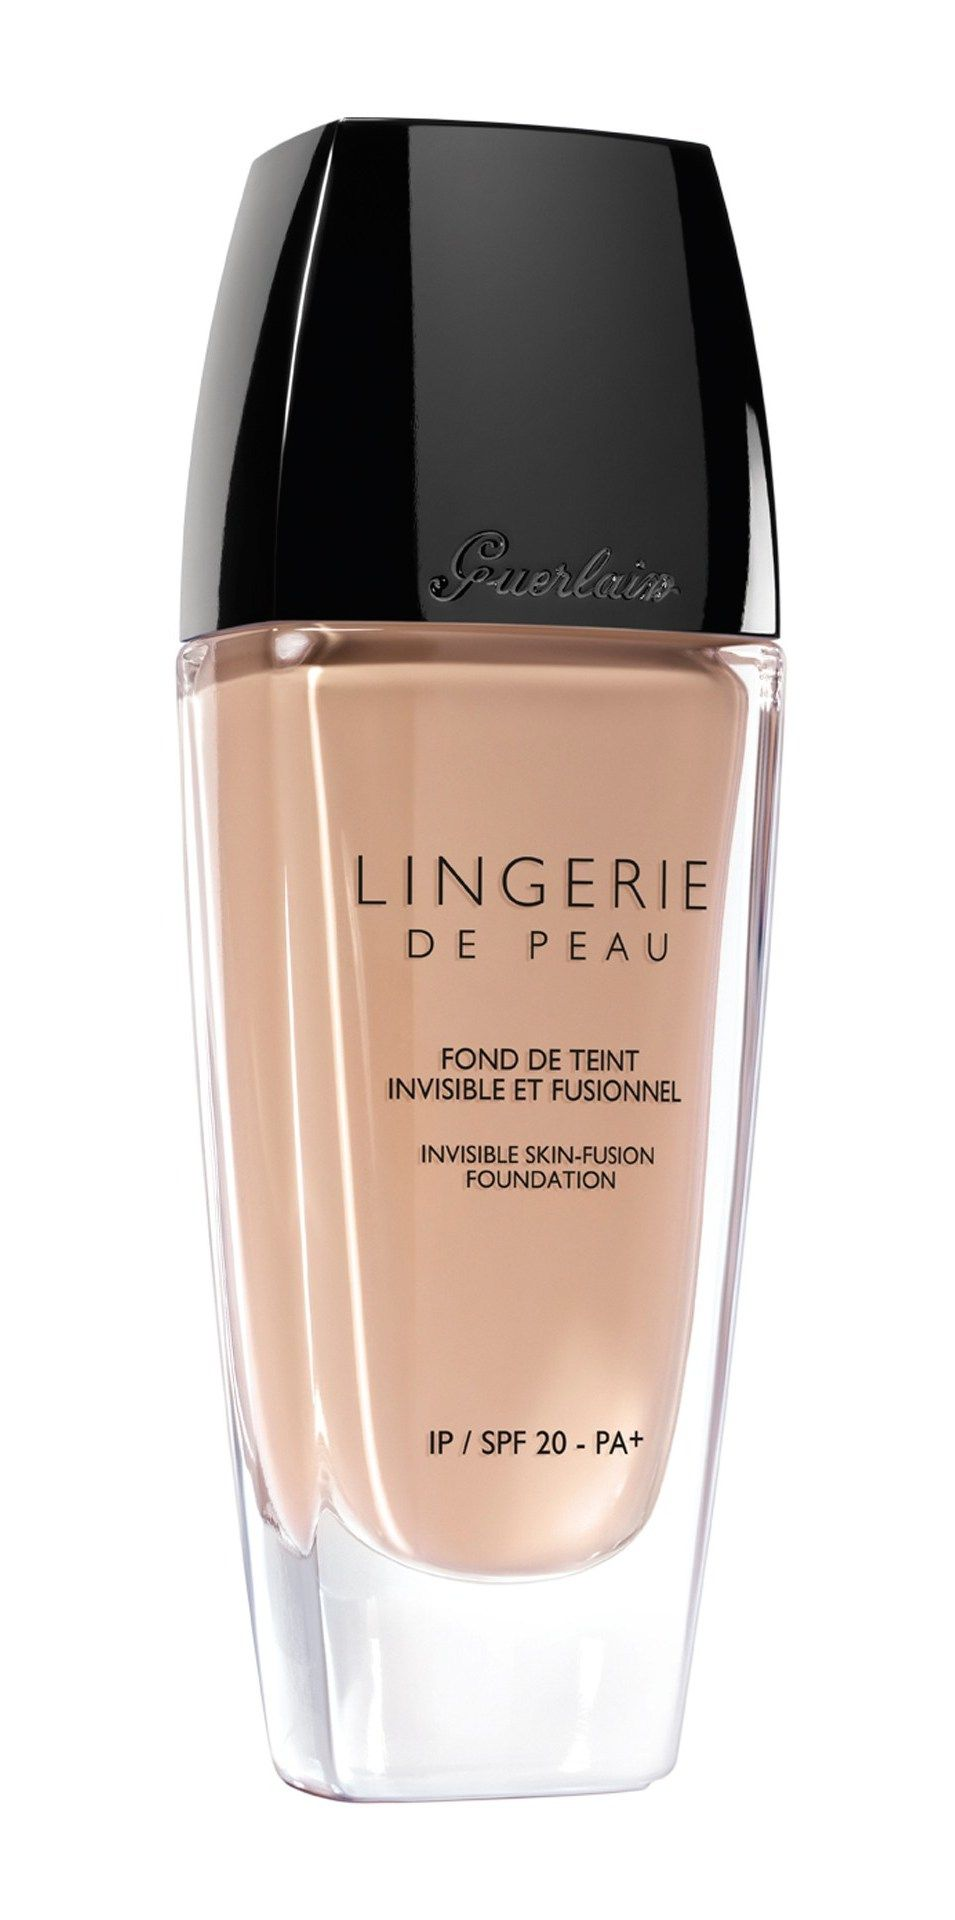 Guerlain Lingerie De Peau Invisible Skin Fusion Foundation SPF 20.Subtle and lightweight yet durable, this foundation melts into the skin and gives the impression of a flawless natural complexion.